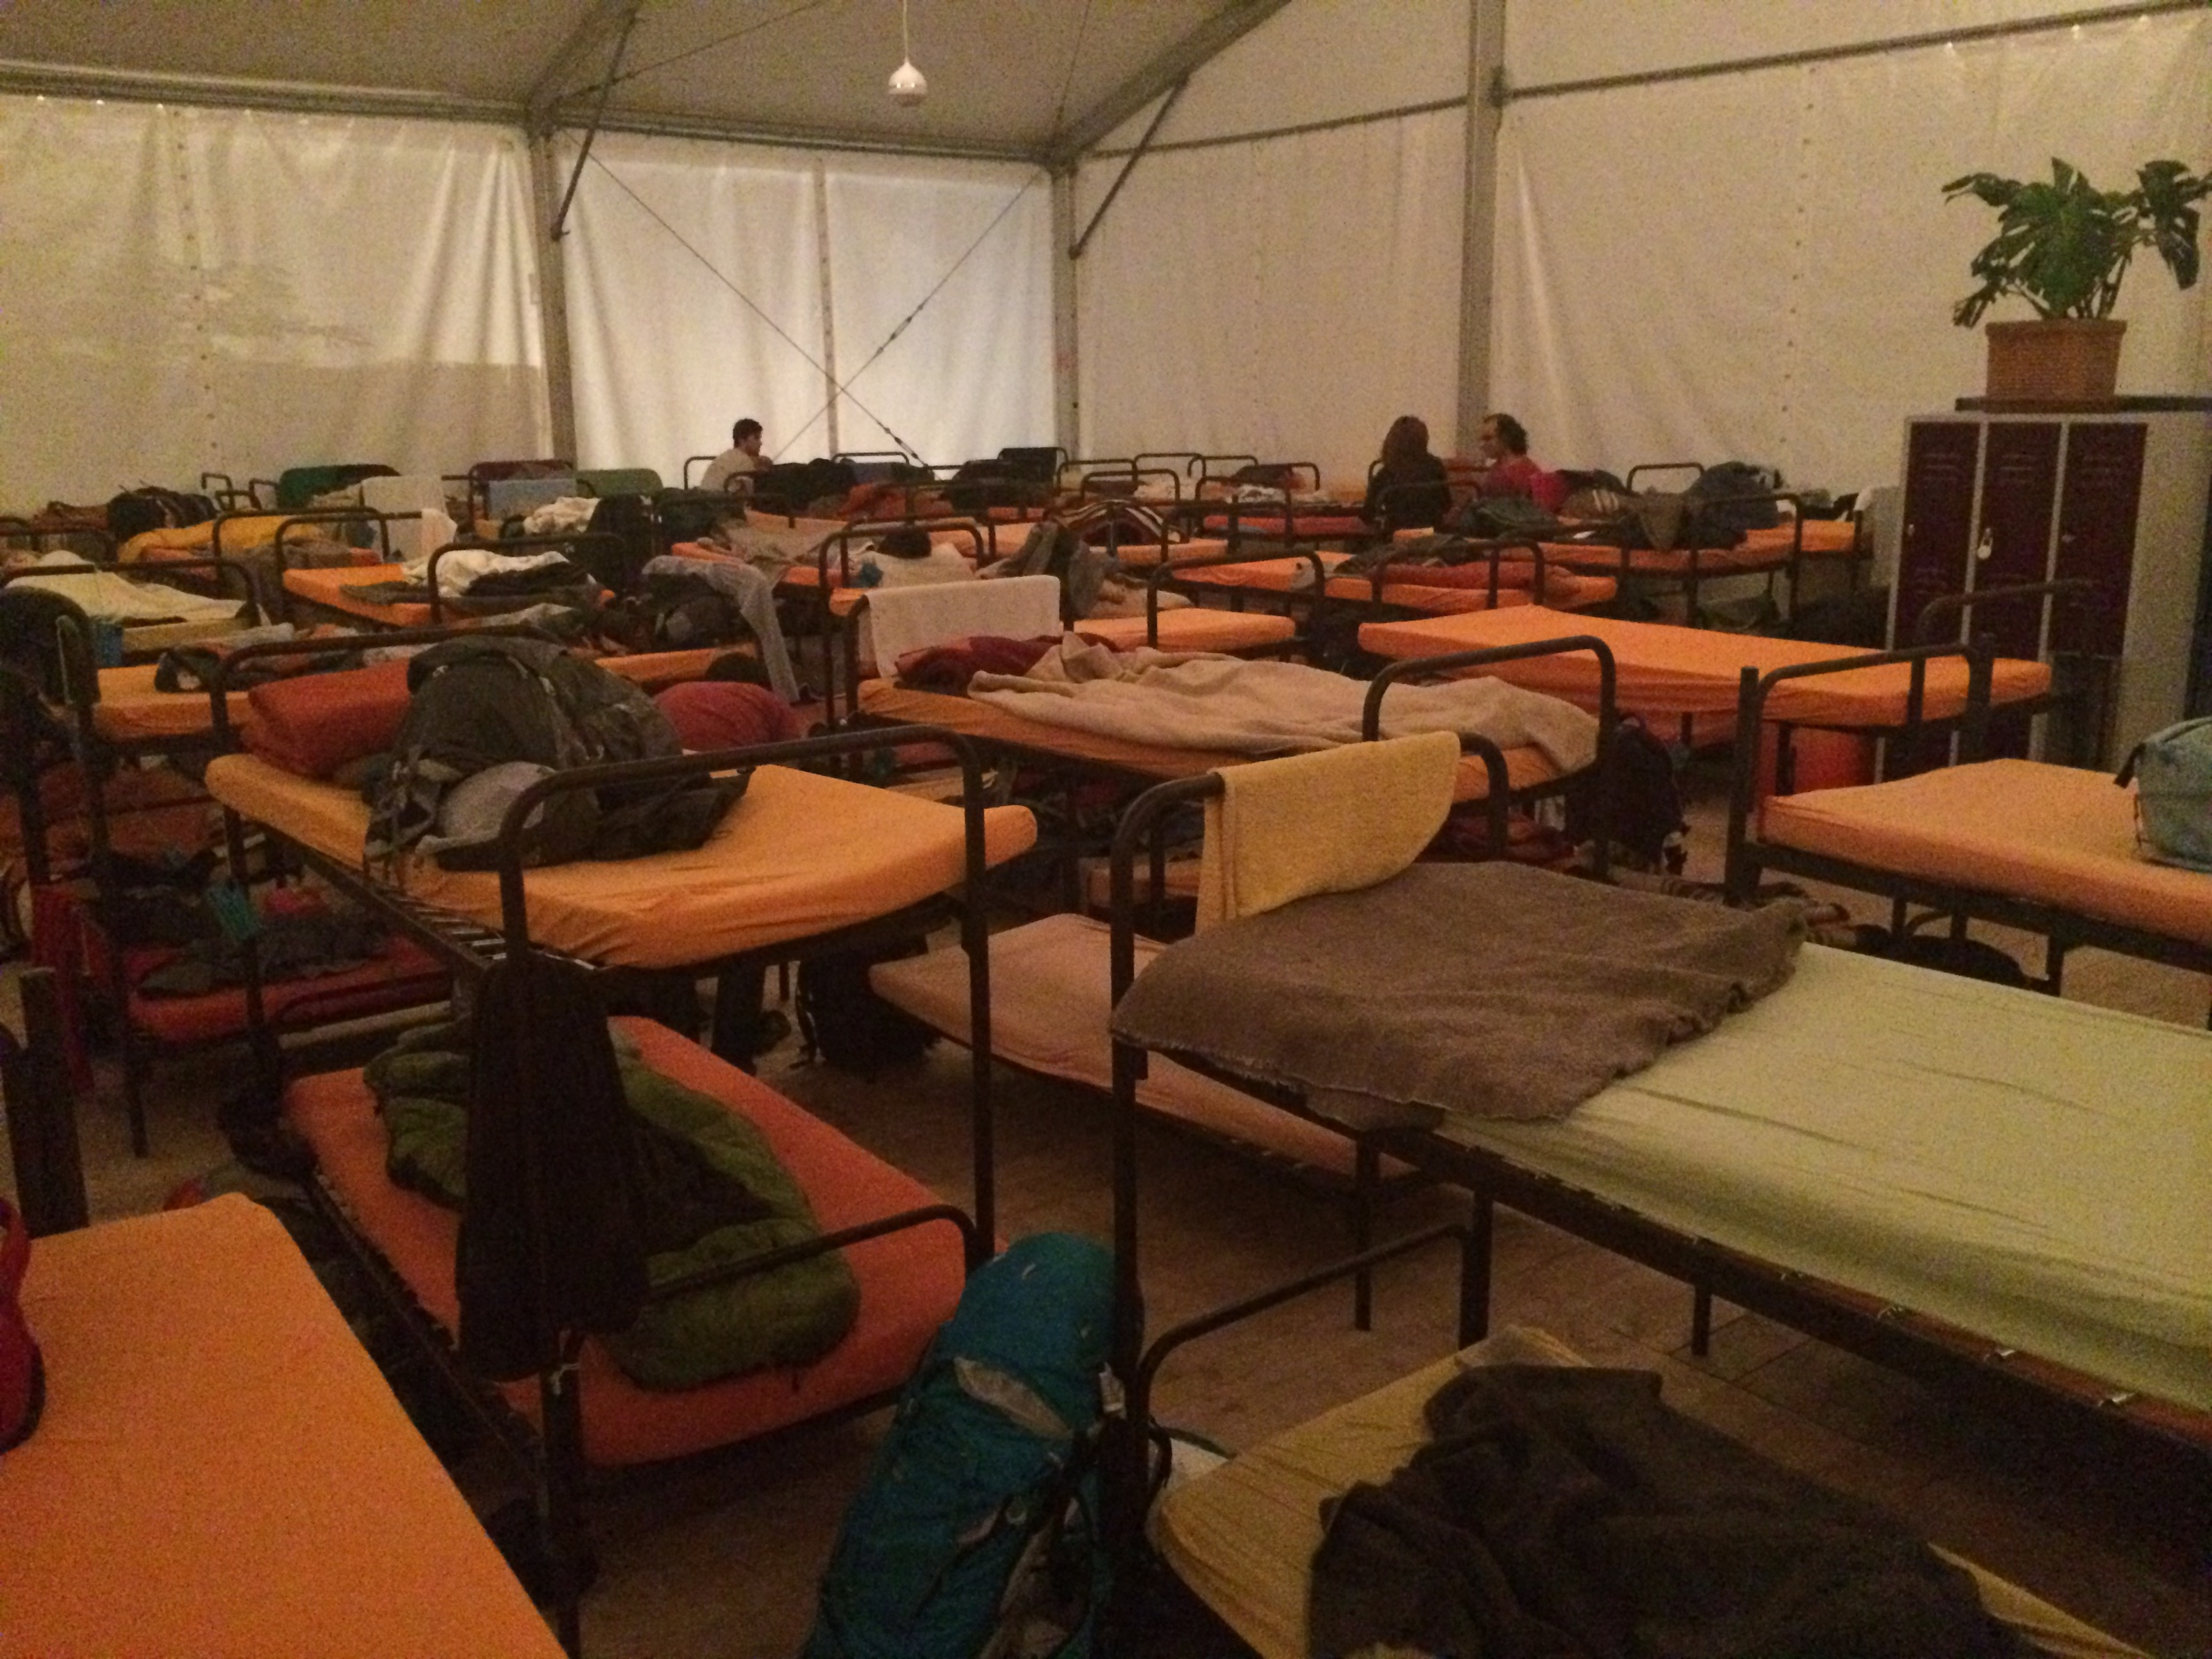 Ah, the luxury of my 100-person dorm. My bed is the one with the orange sheet on it... no not that one the one next to it... how can you not see it?